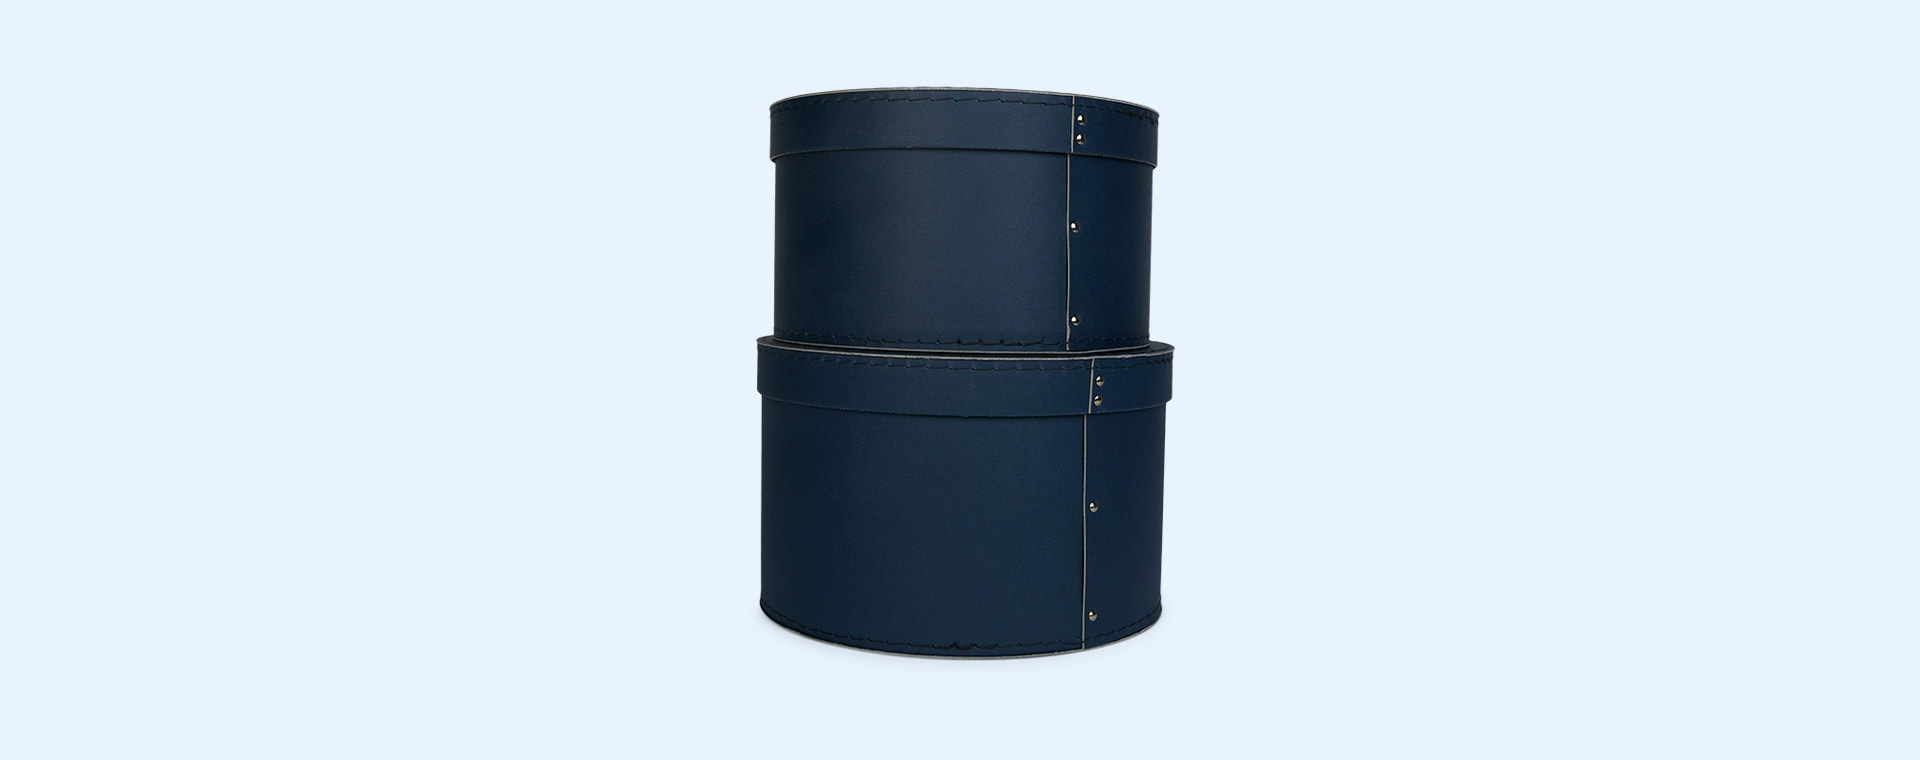 Blue Kid's Concept Round Storage Boxes Set of 2